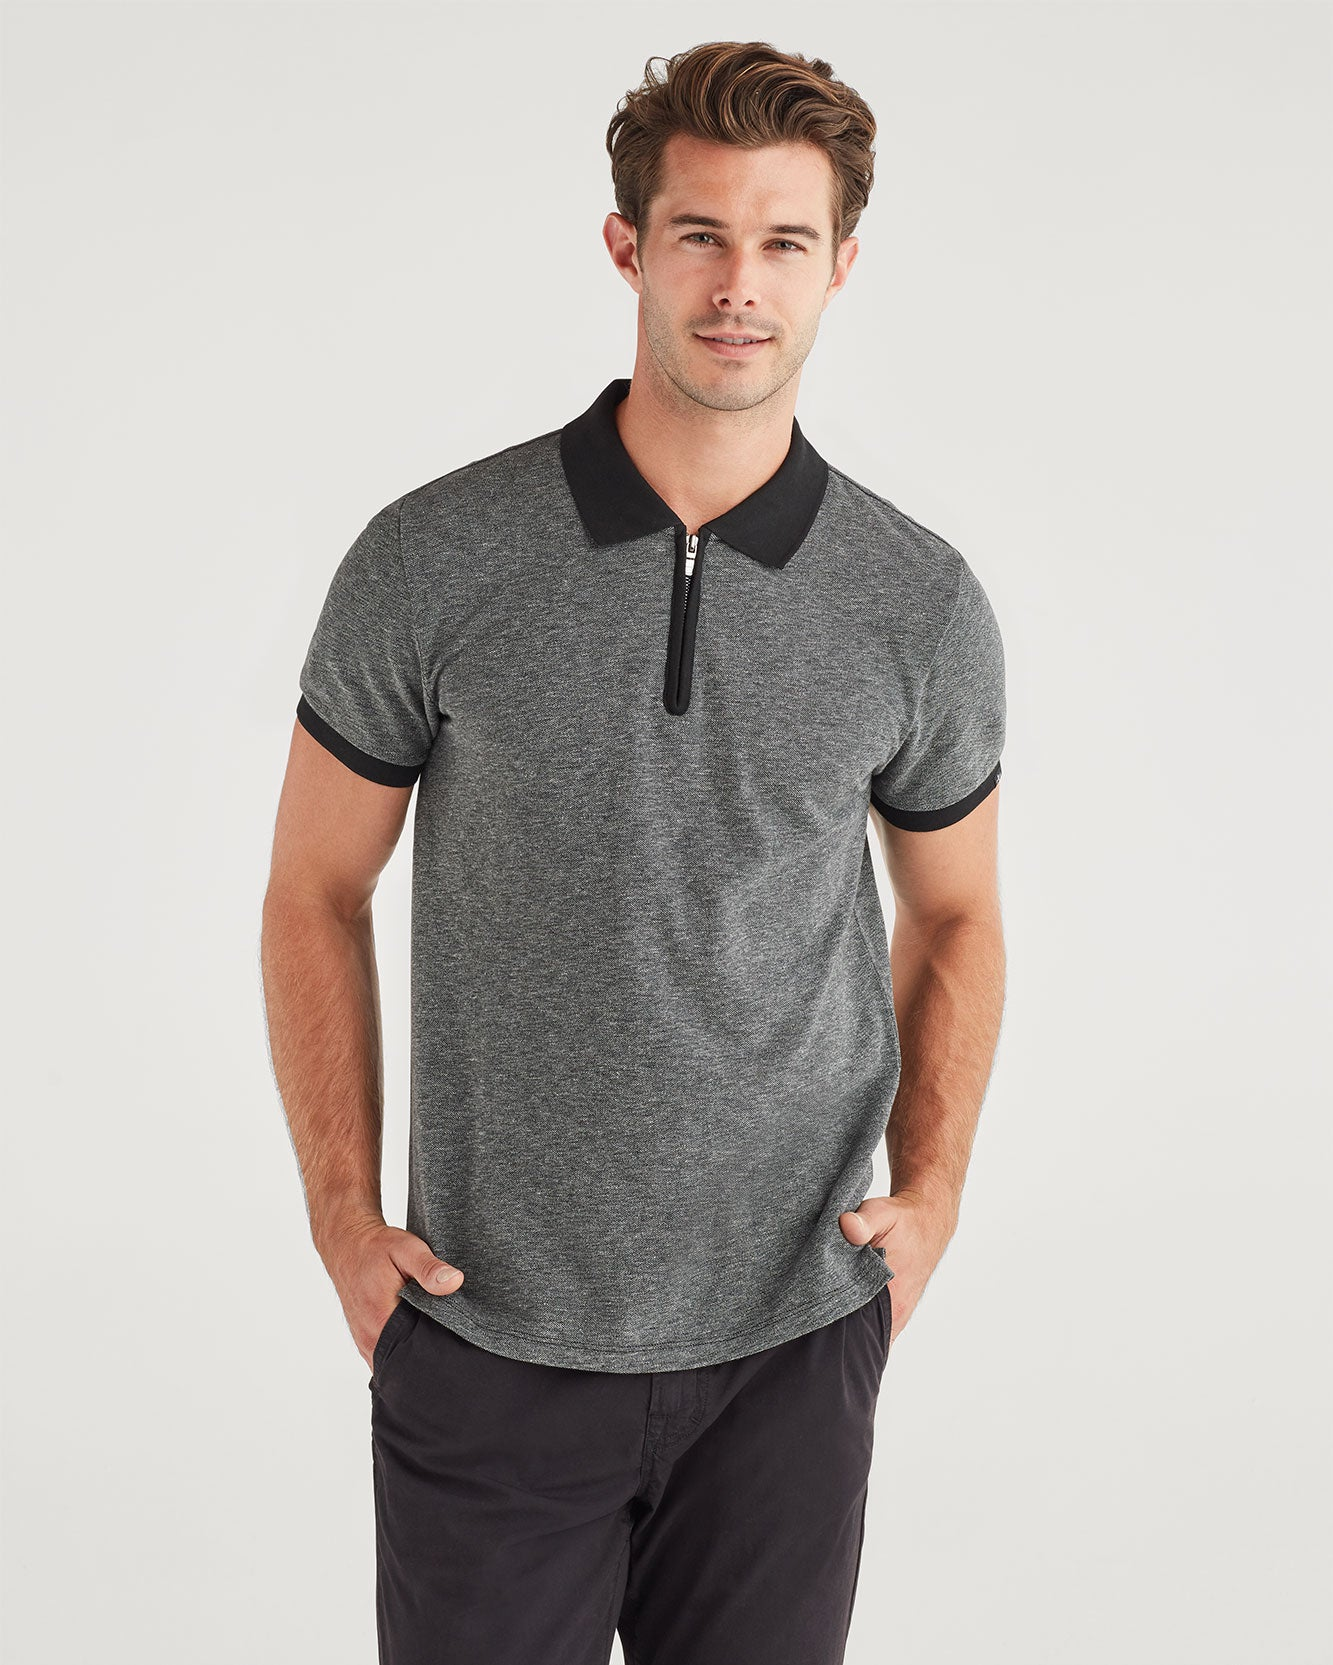 Image of Marled Pique Half Zip Polo in Charcoal